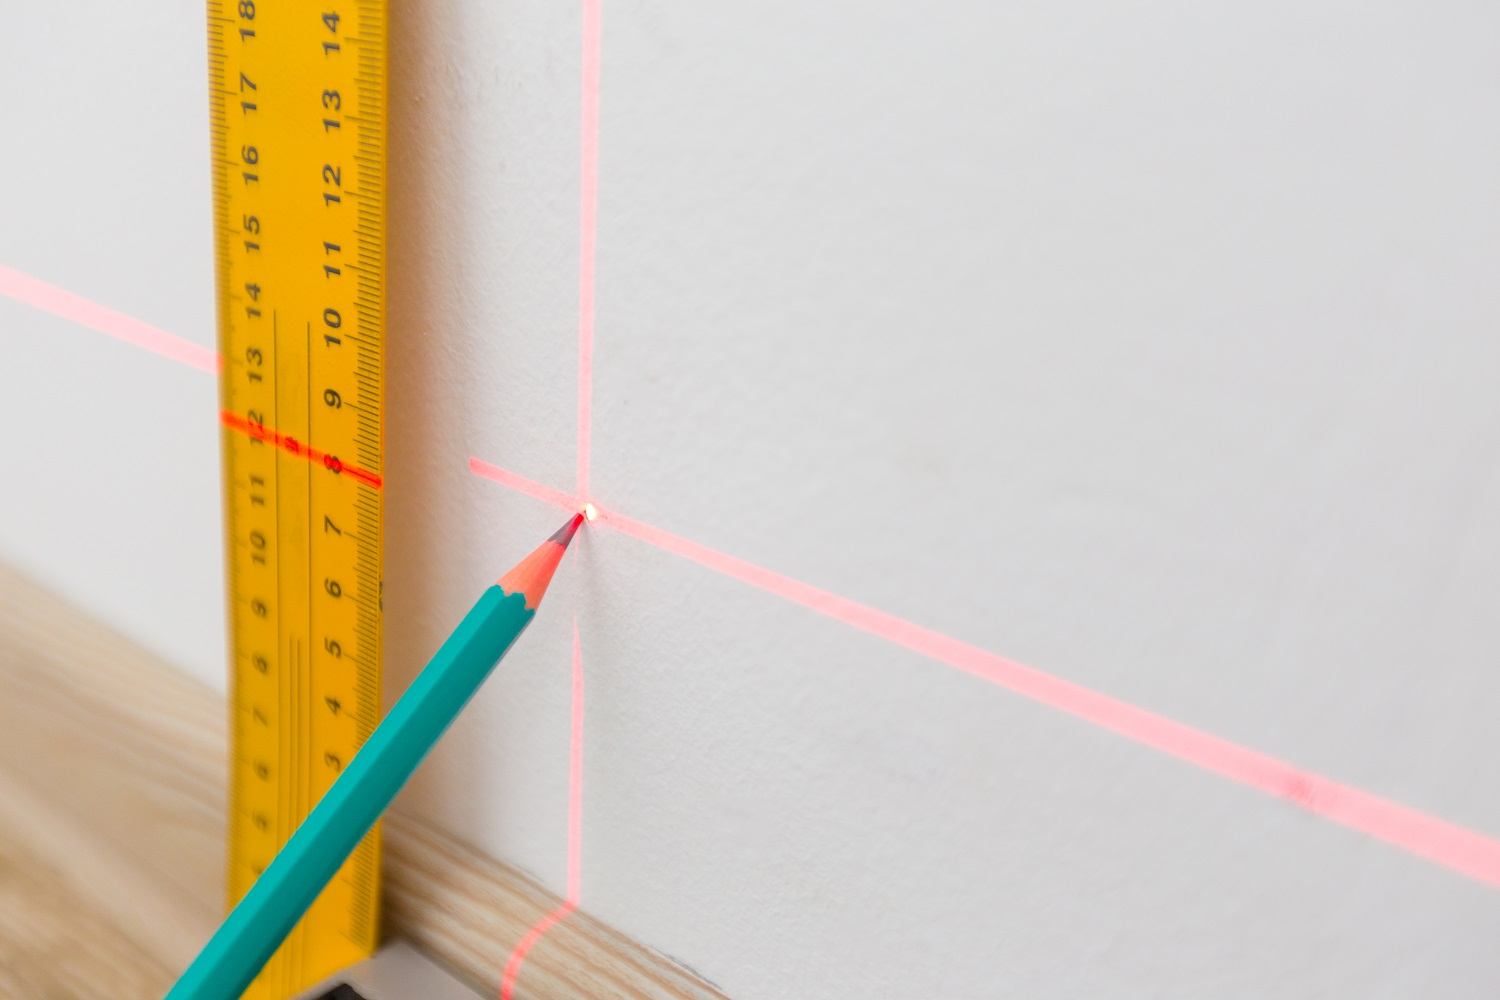 10 best laser level for home use of